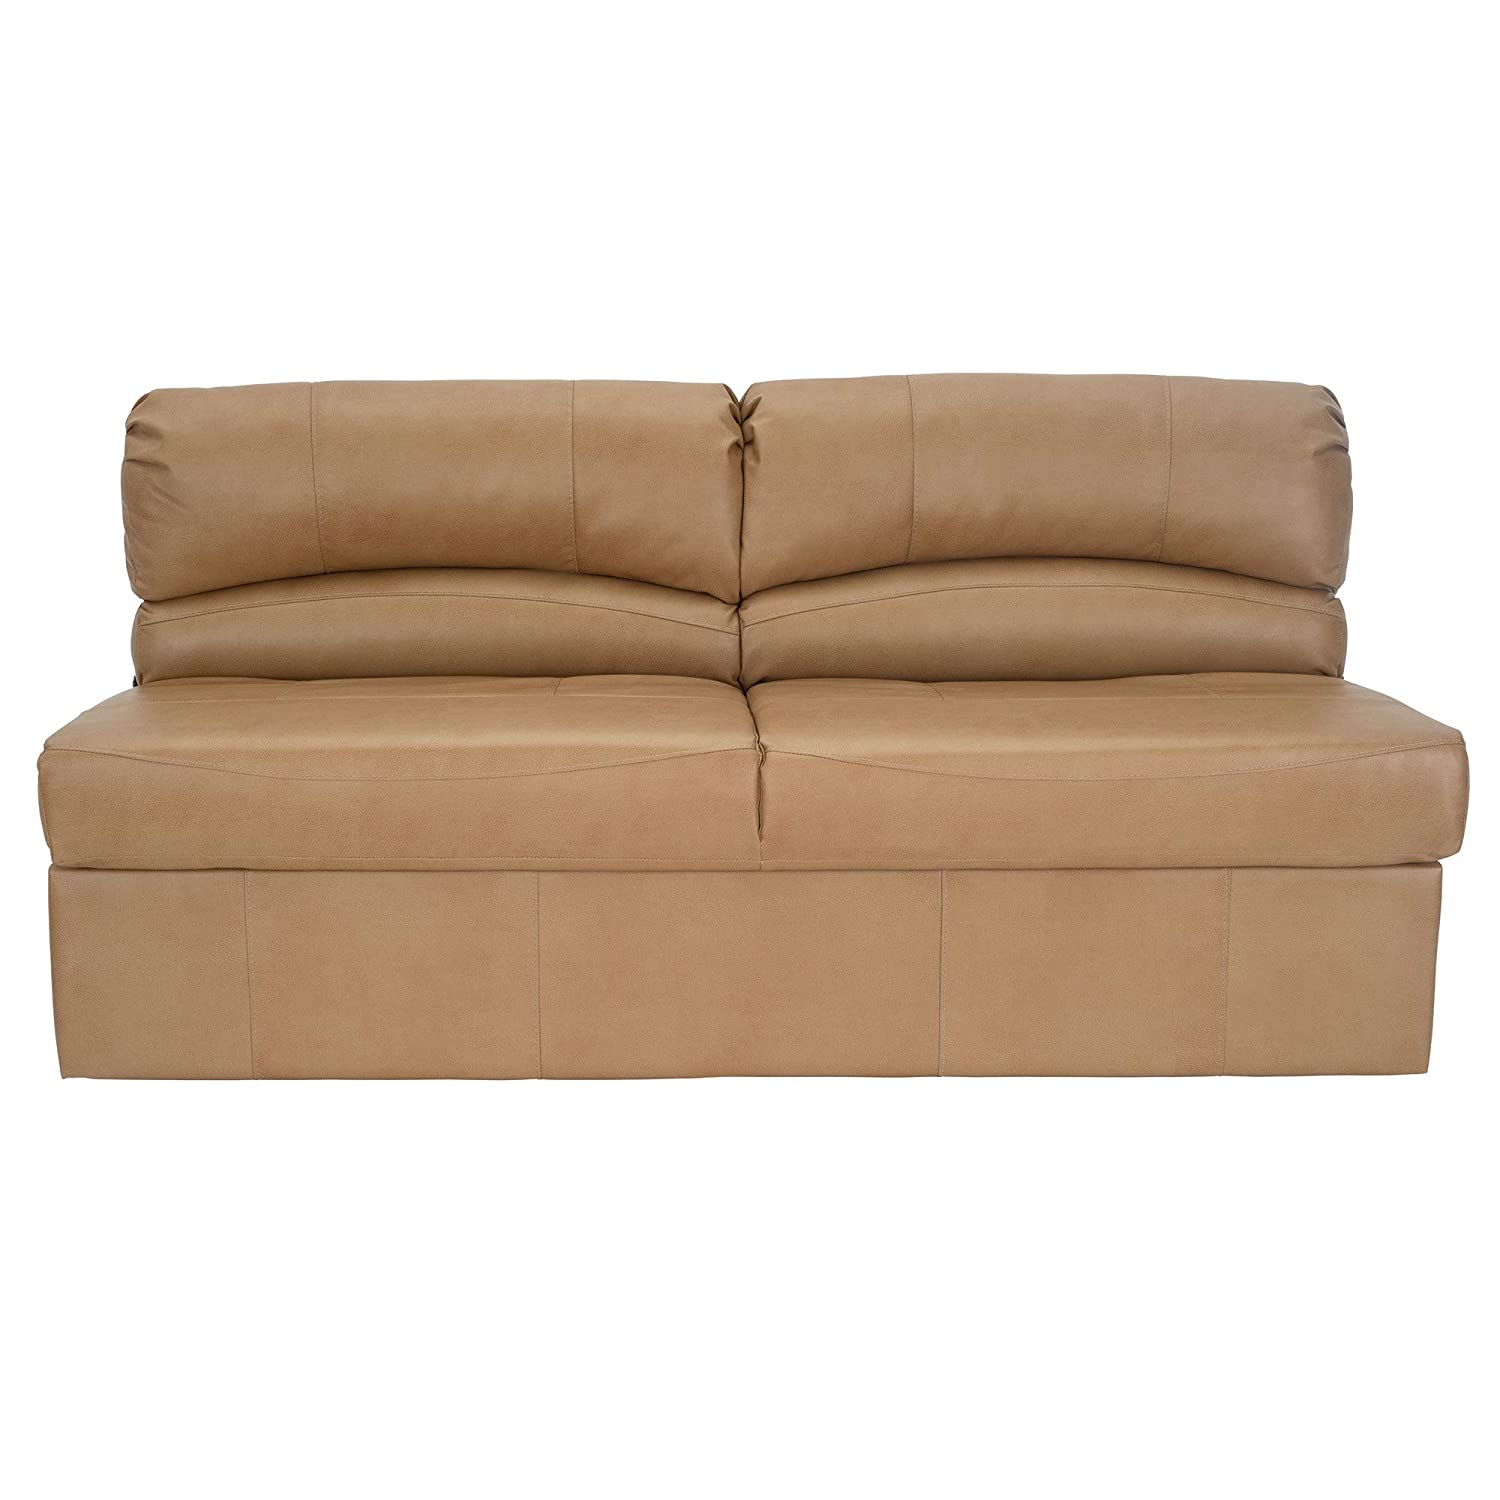 Cool Charles Rv Jackknife Sofa Love Seat Sleeper Sofa Length Options 62 68 72 11 Legs And Hardware Included 68 Inch Toffee Alphanode Cool Chair Designs And Ideas Alphanodeonline